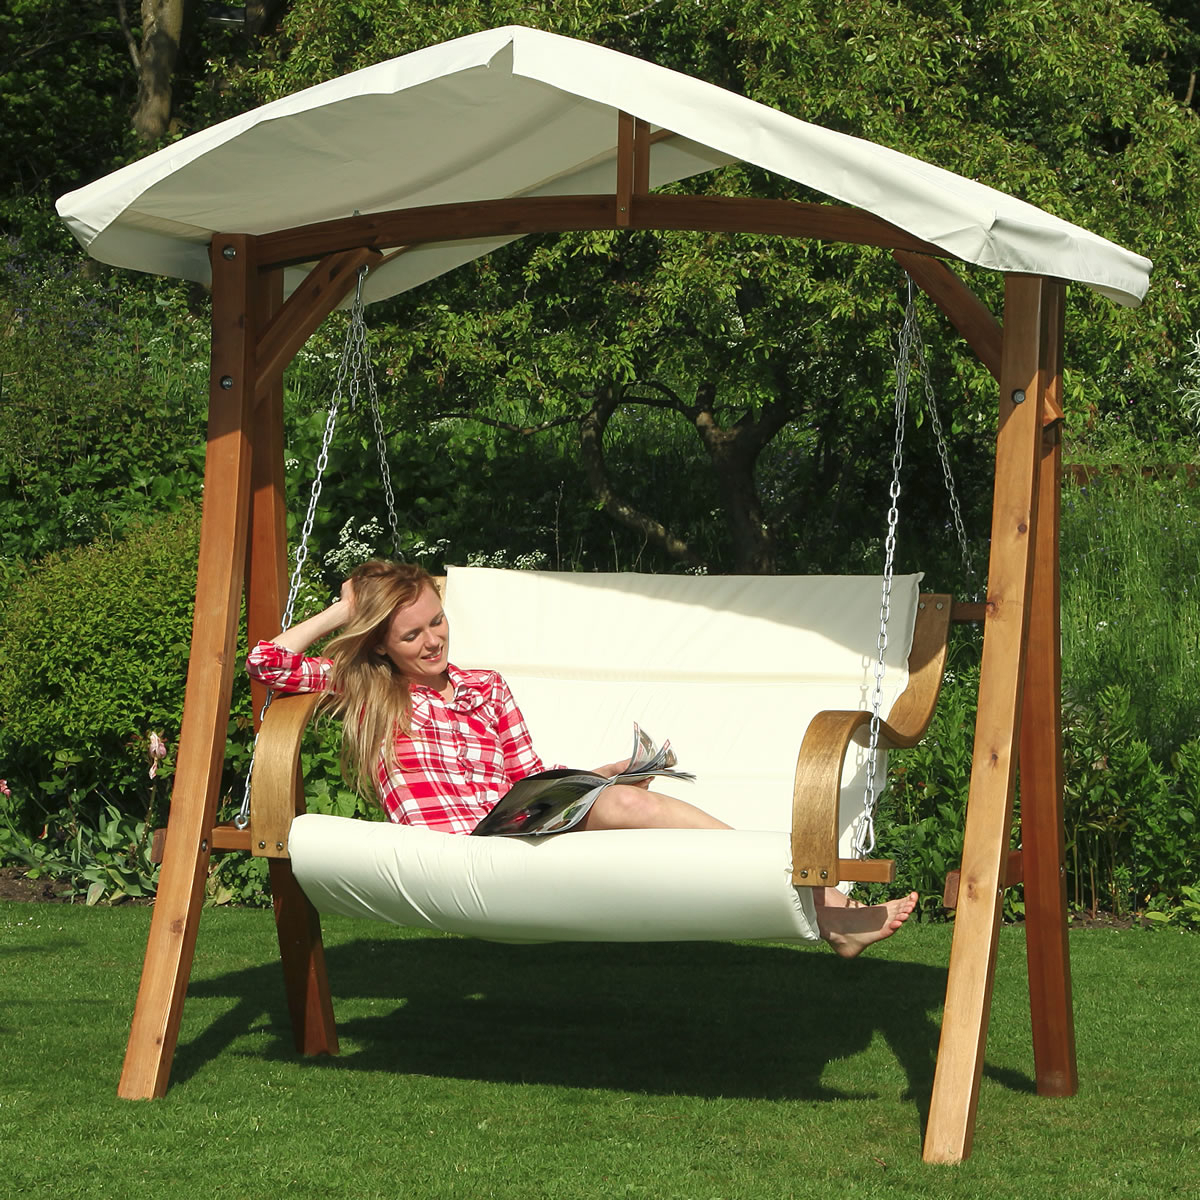 Canopy: Garden Swing Canopy With Regard To 2019 Garden Leisure Outdoor Hammock Patio Canopy Rocking Chairs (View 30 of 30)